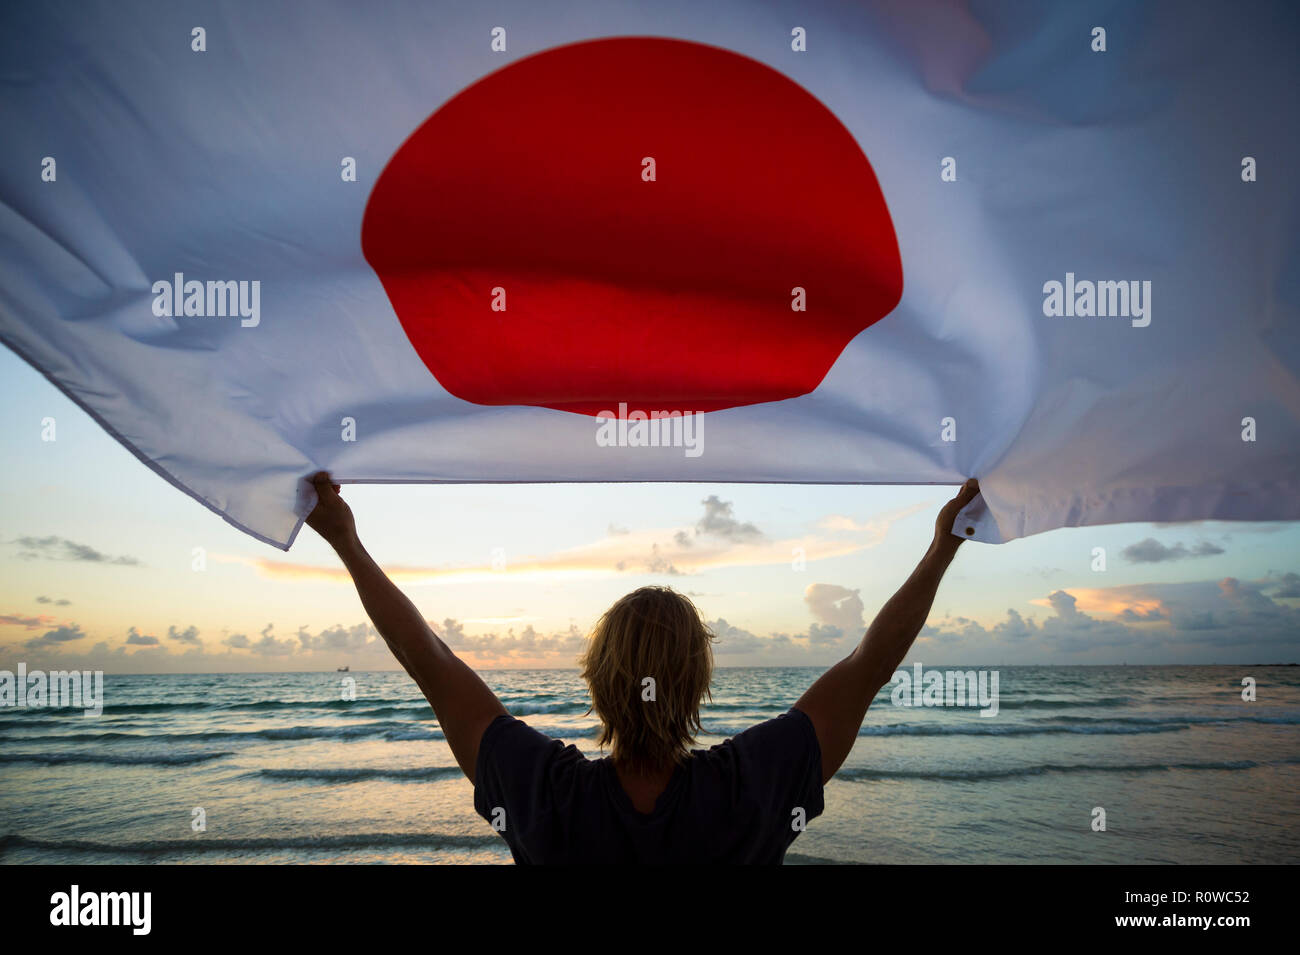 Silhouette of man holding Japanese flag in front of soft sunrise sky at the beach - Stock Image